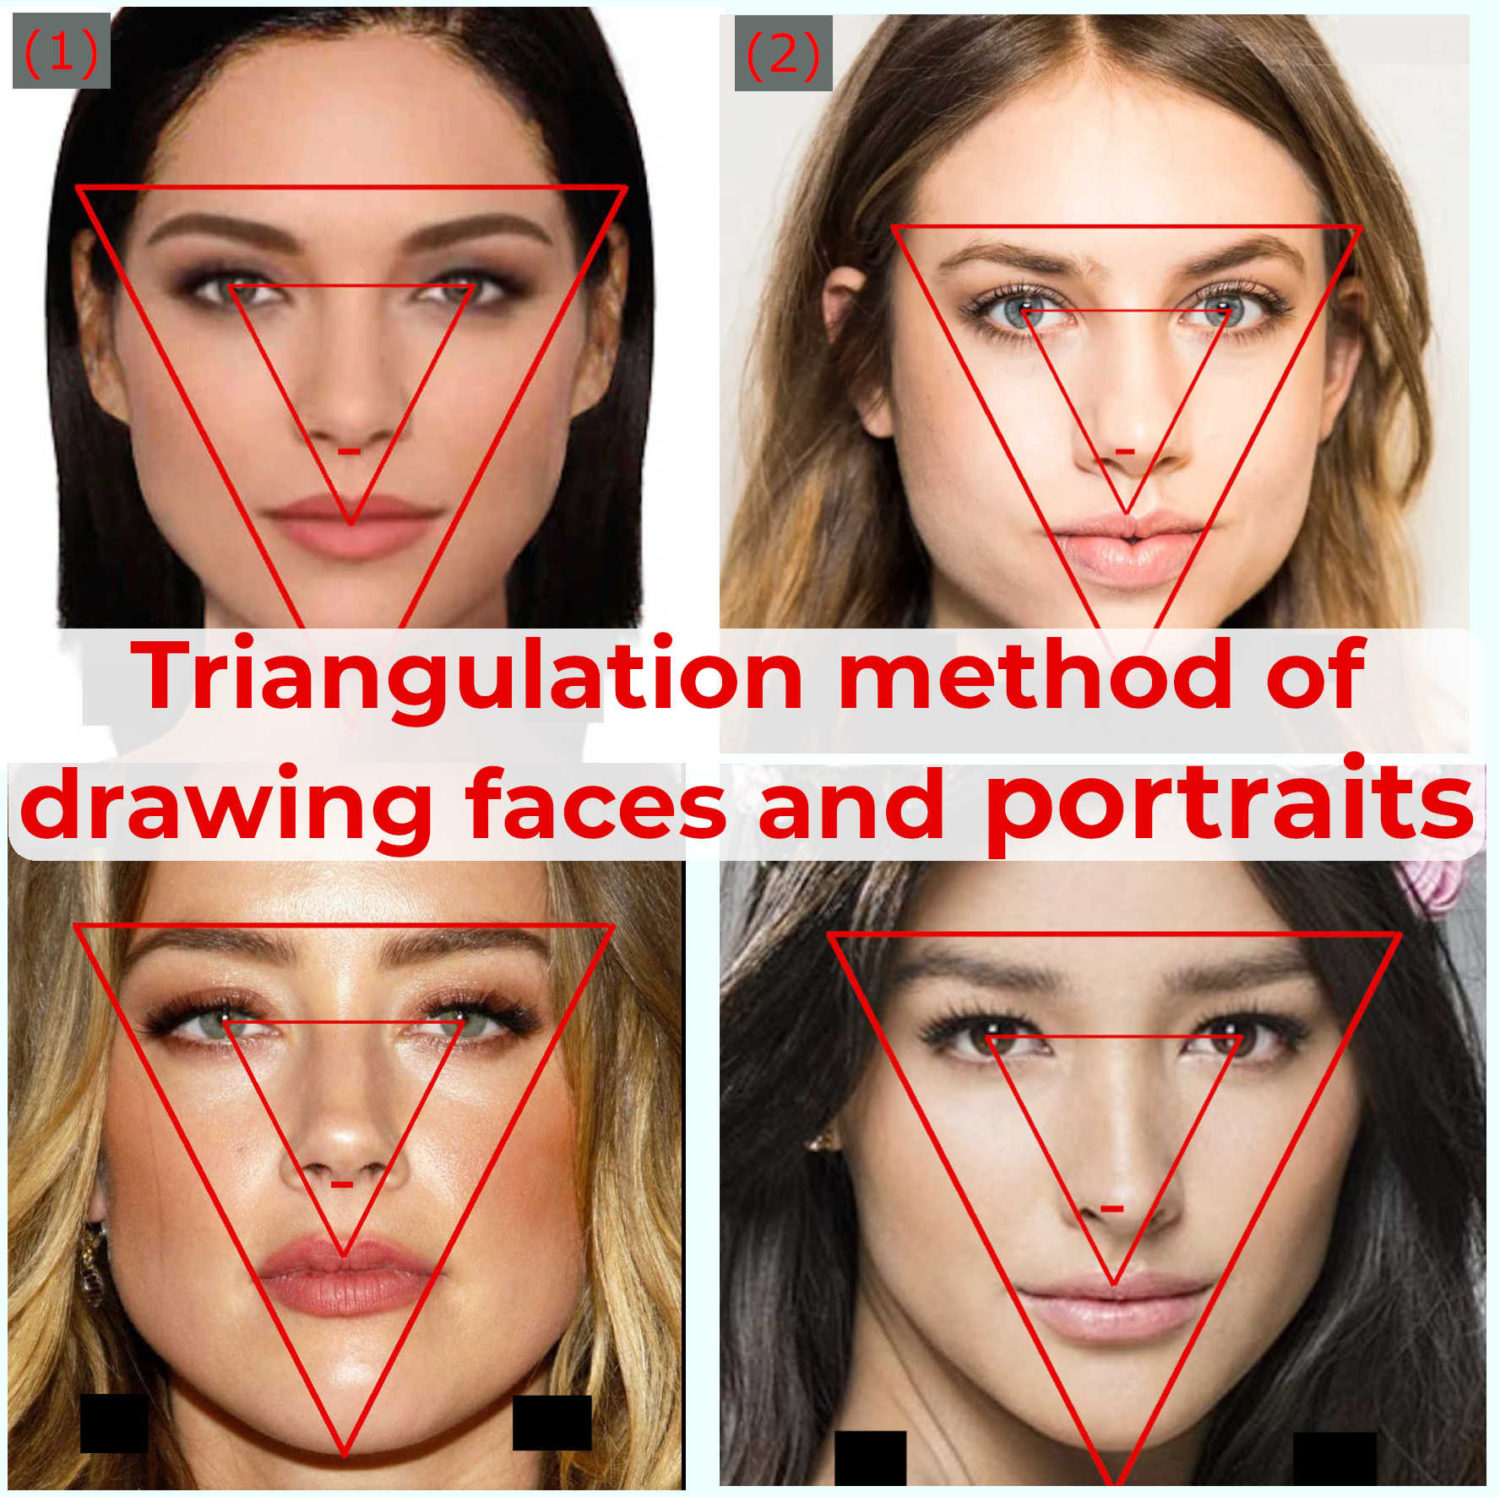 triangulation method of drawing faces - featured